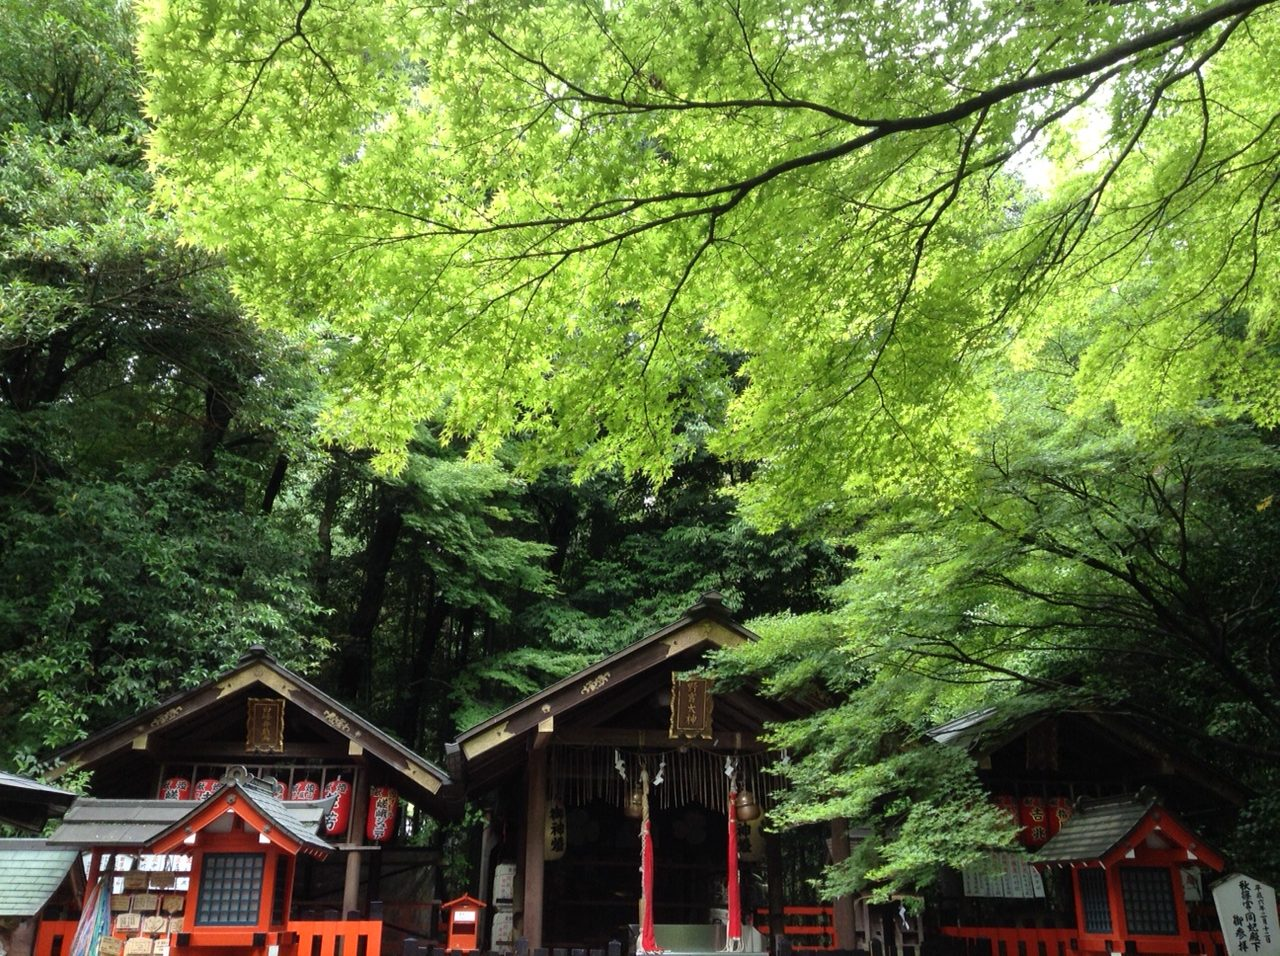 The lush of greenery at Nonomiya shrine.